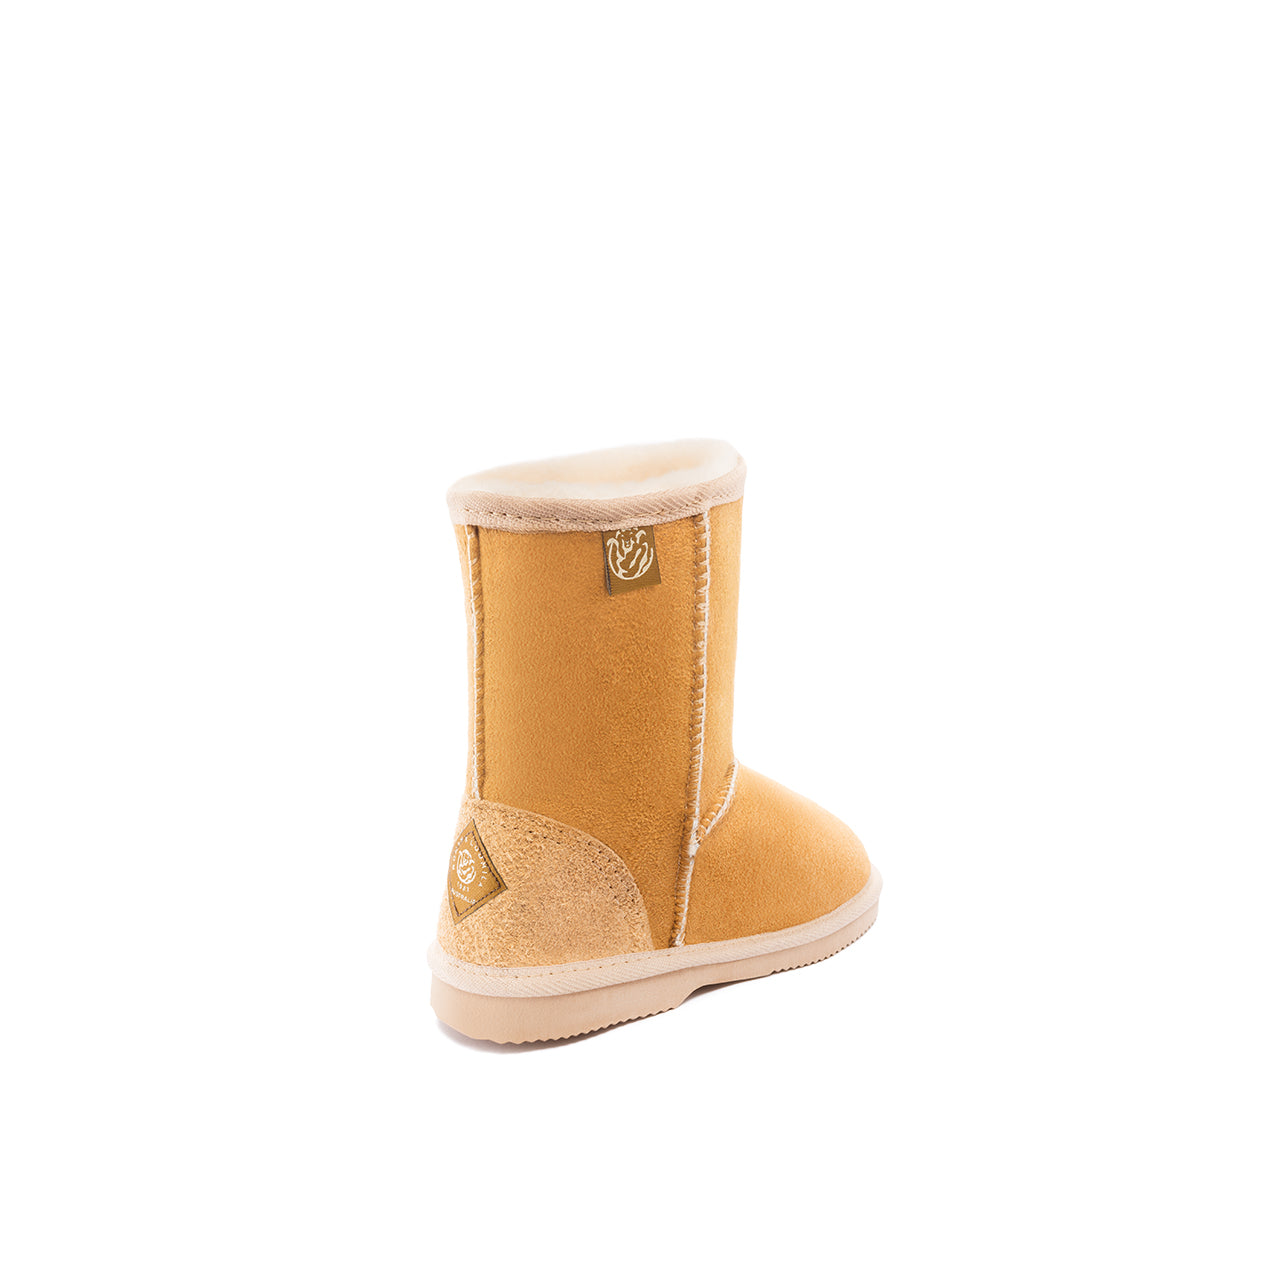 Children's Long Boots | 100% Australian Made | Roman & Ludmila